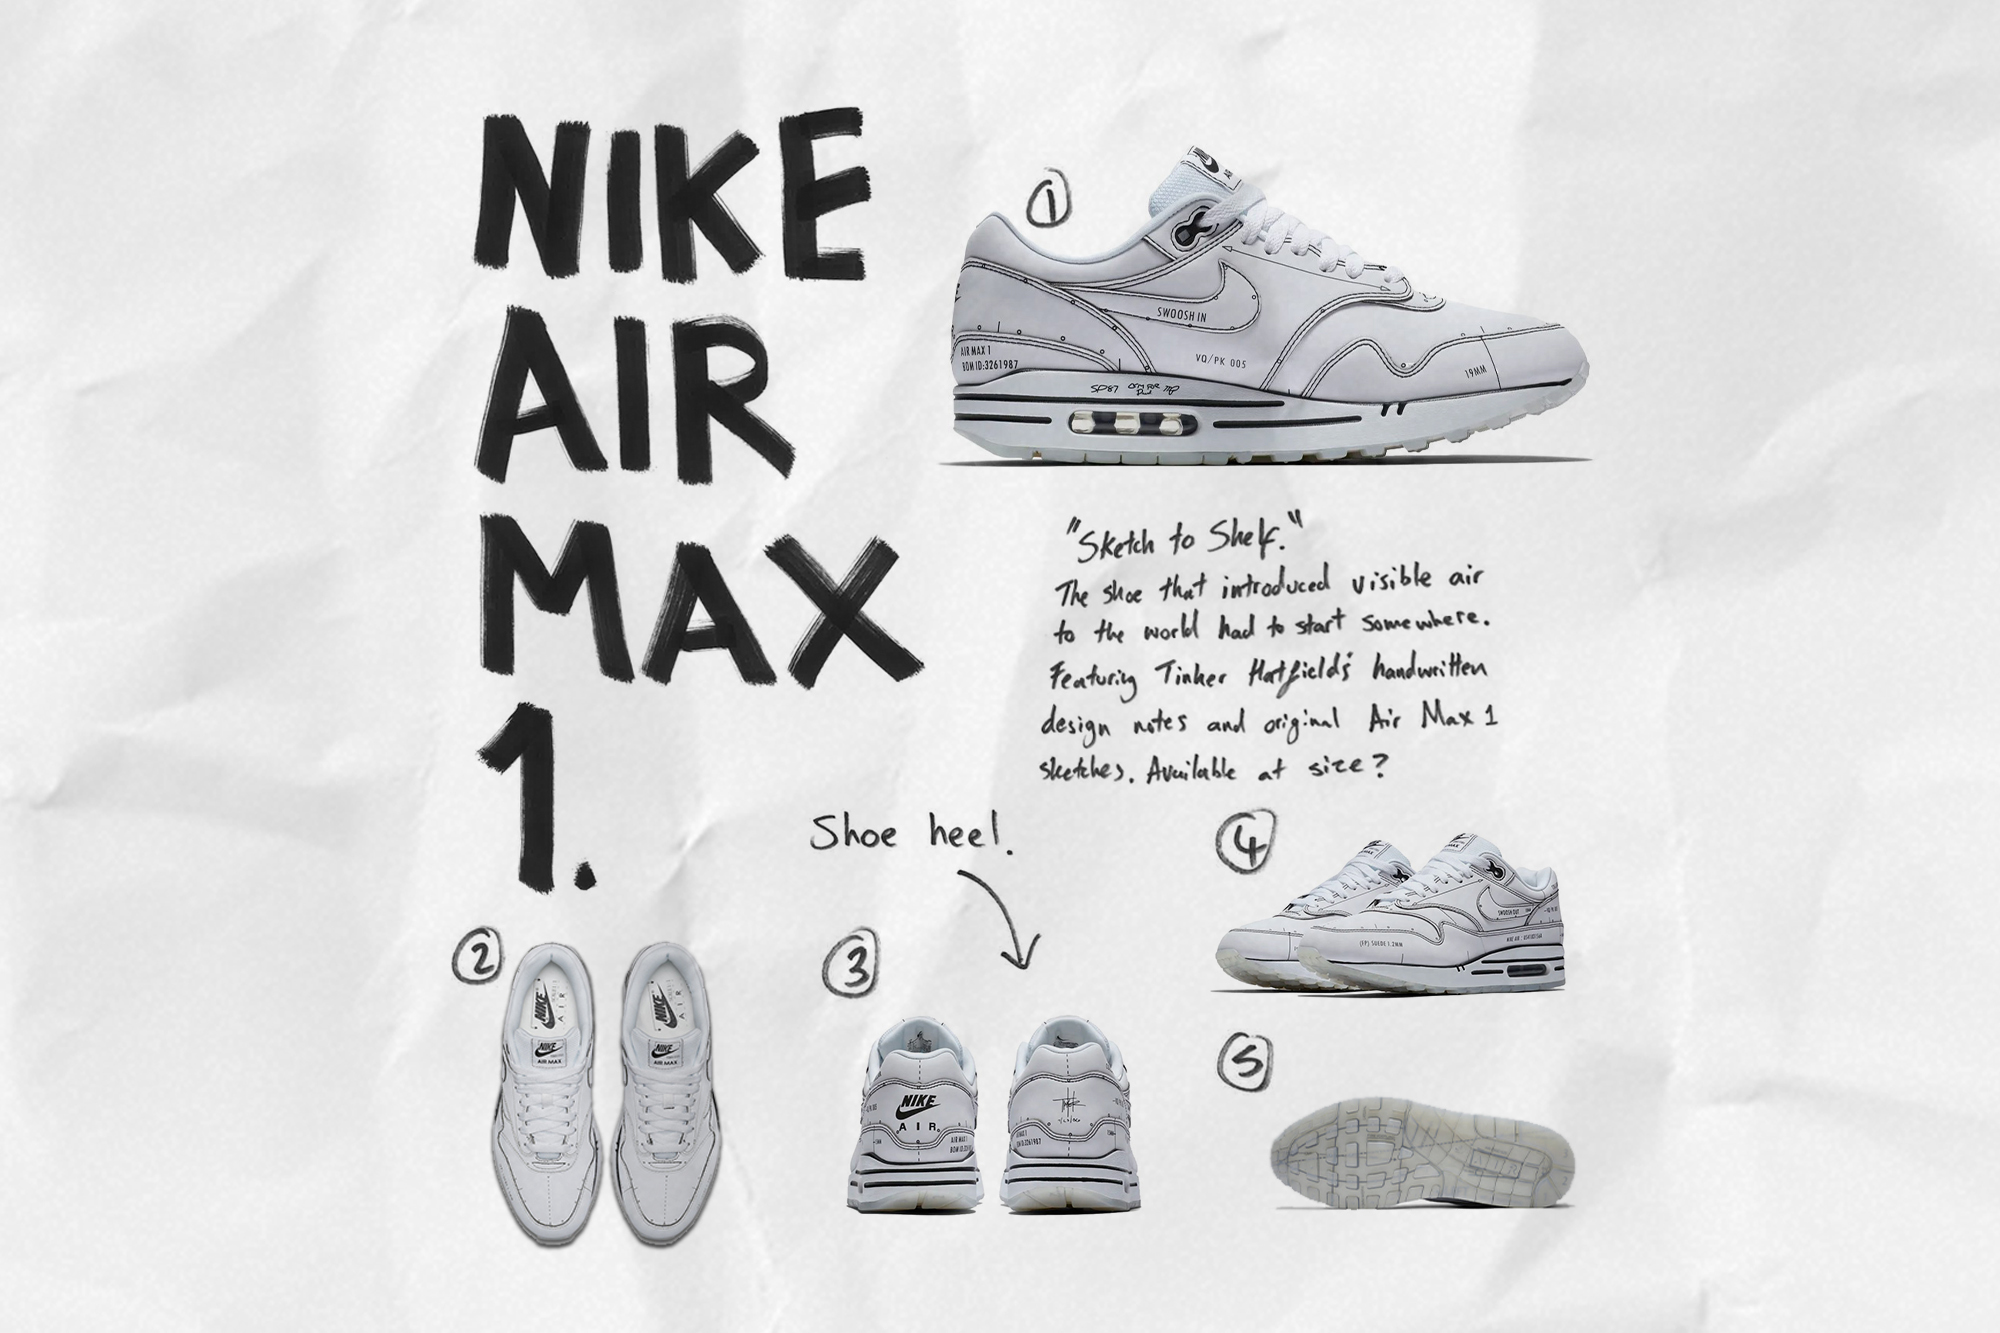 Air Max 1 'Sketch to Self'